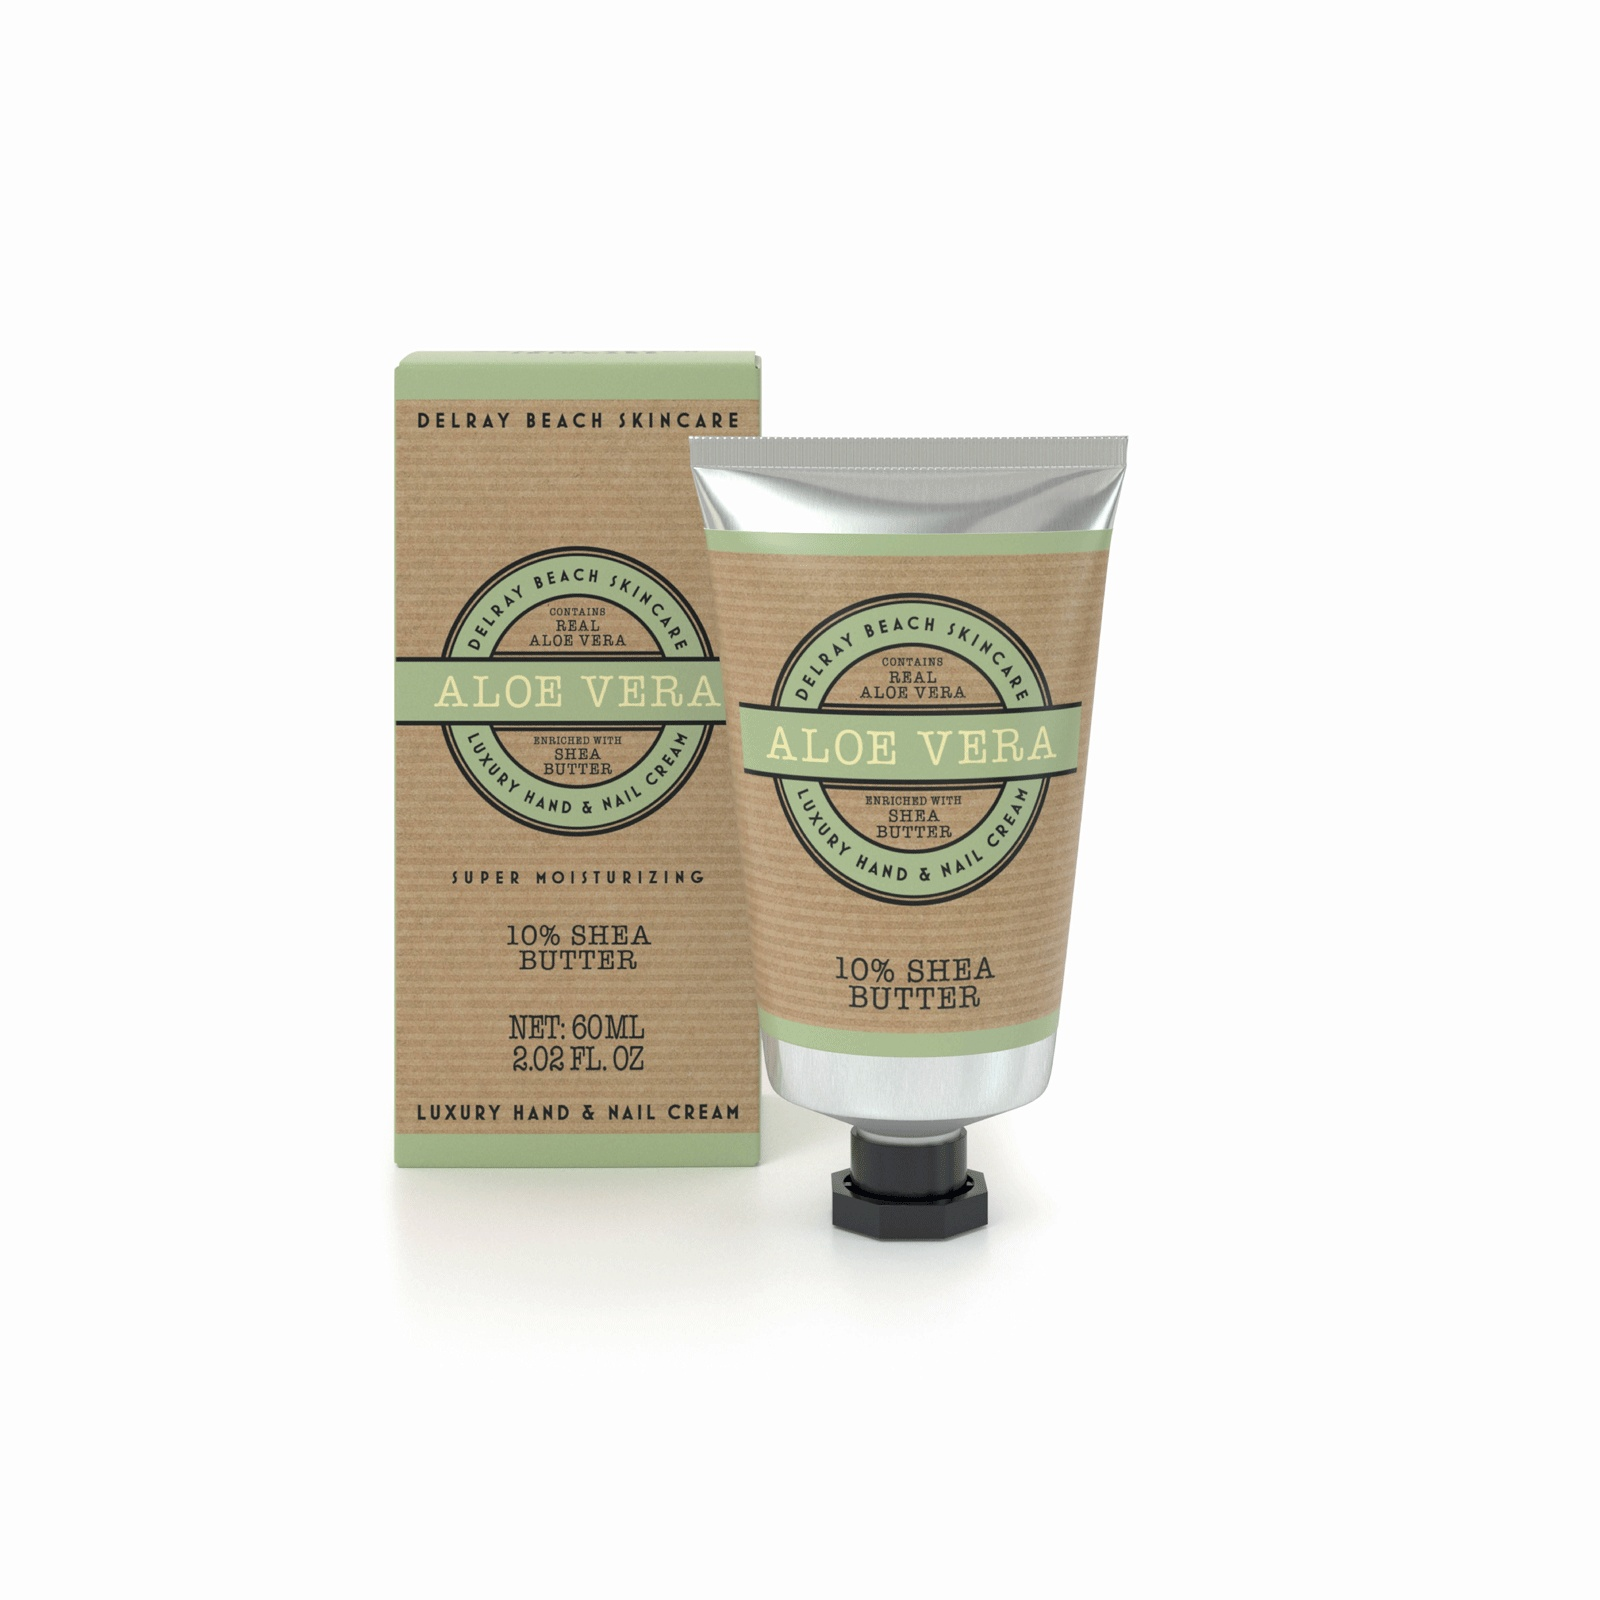 [MPLUS] Somerset Delray Hand Cream Aloe Vera 60Ml